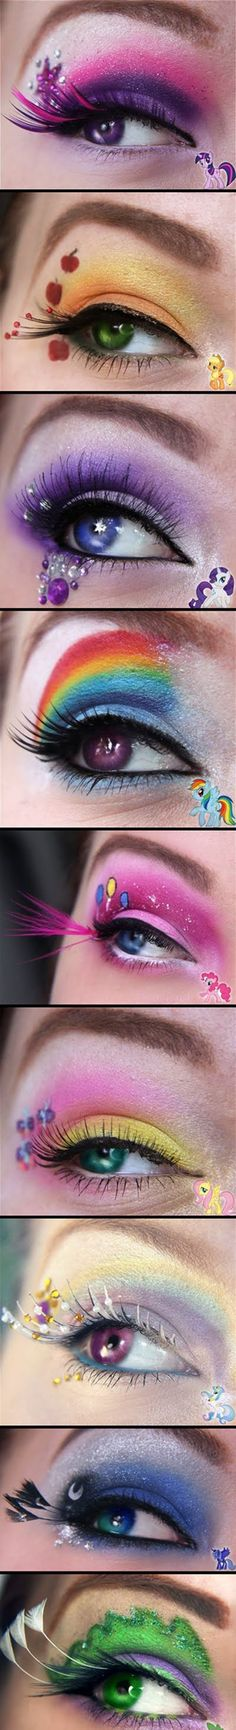 Is Magic Make-up looks inspired by My Little Pony: Friendship is Magic. I love Luna's look.Make-up looks inspired by My Little Pony: Friendship is Magic. I love Luna's look. My Little Pony Birthday, My Little Pony Party, Pony Makeup, Makeup Art, Makeup Ideas, Fairy Makeup, Makeup Geek, Cosplay Makeup, Costume Makeup